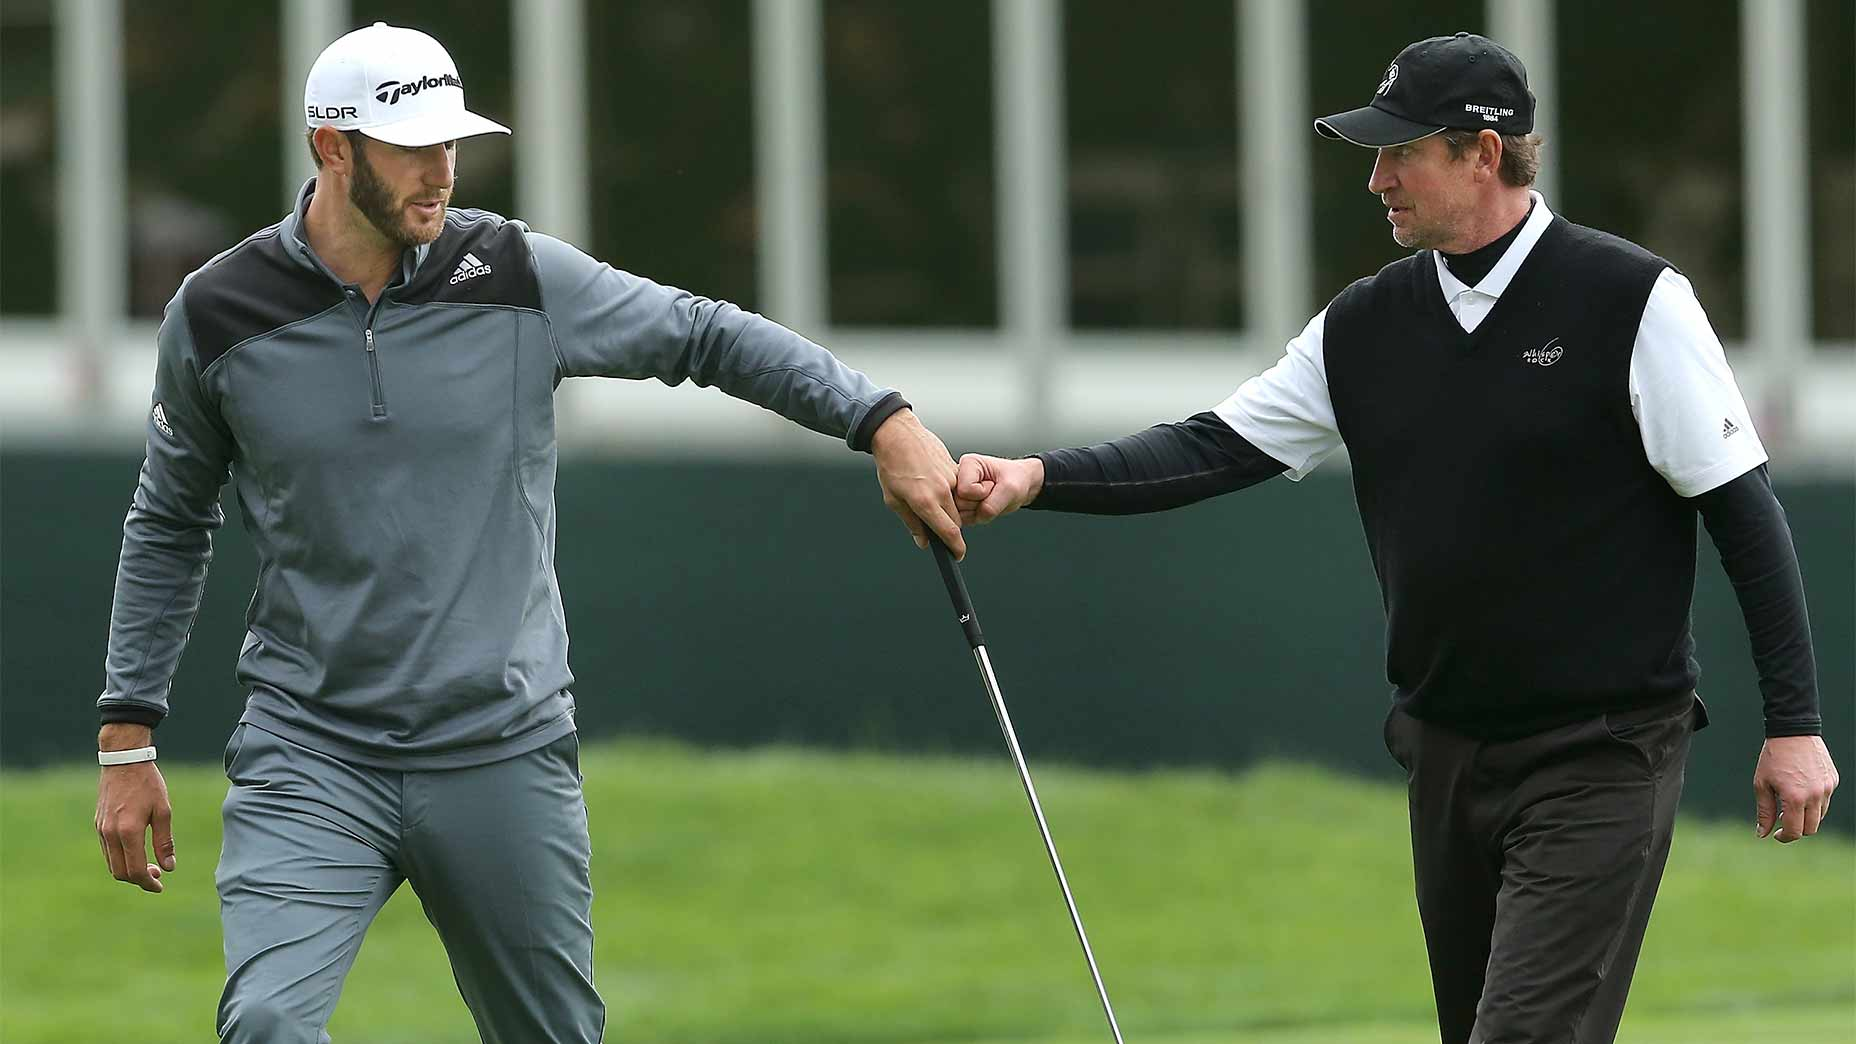 Wayne Gretzky and Dustin Johnson now have both family and business ties